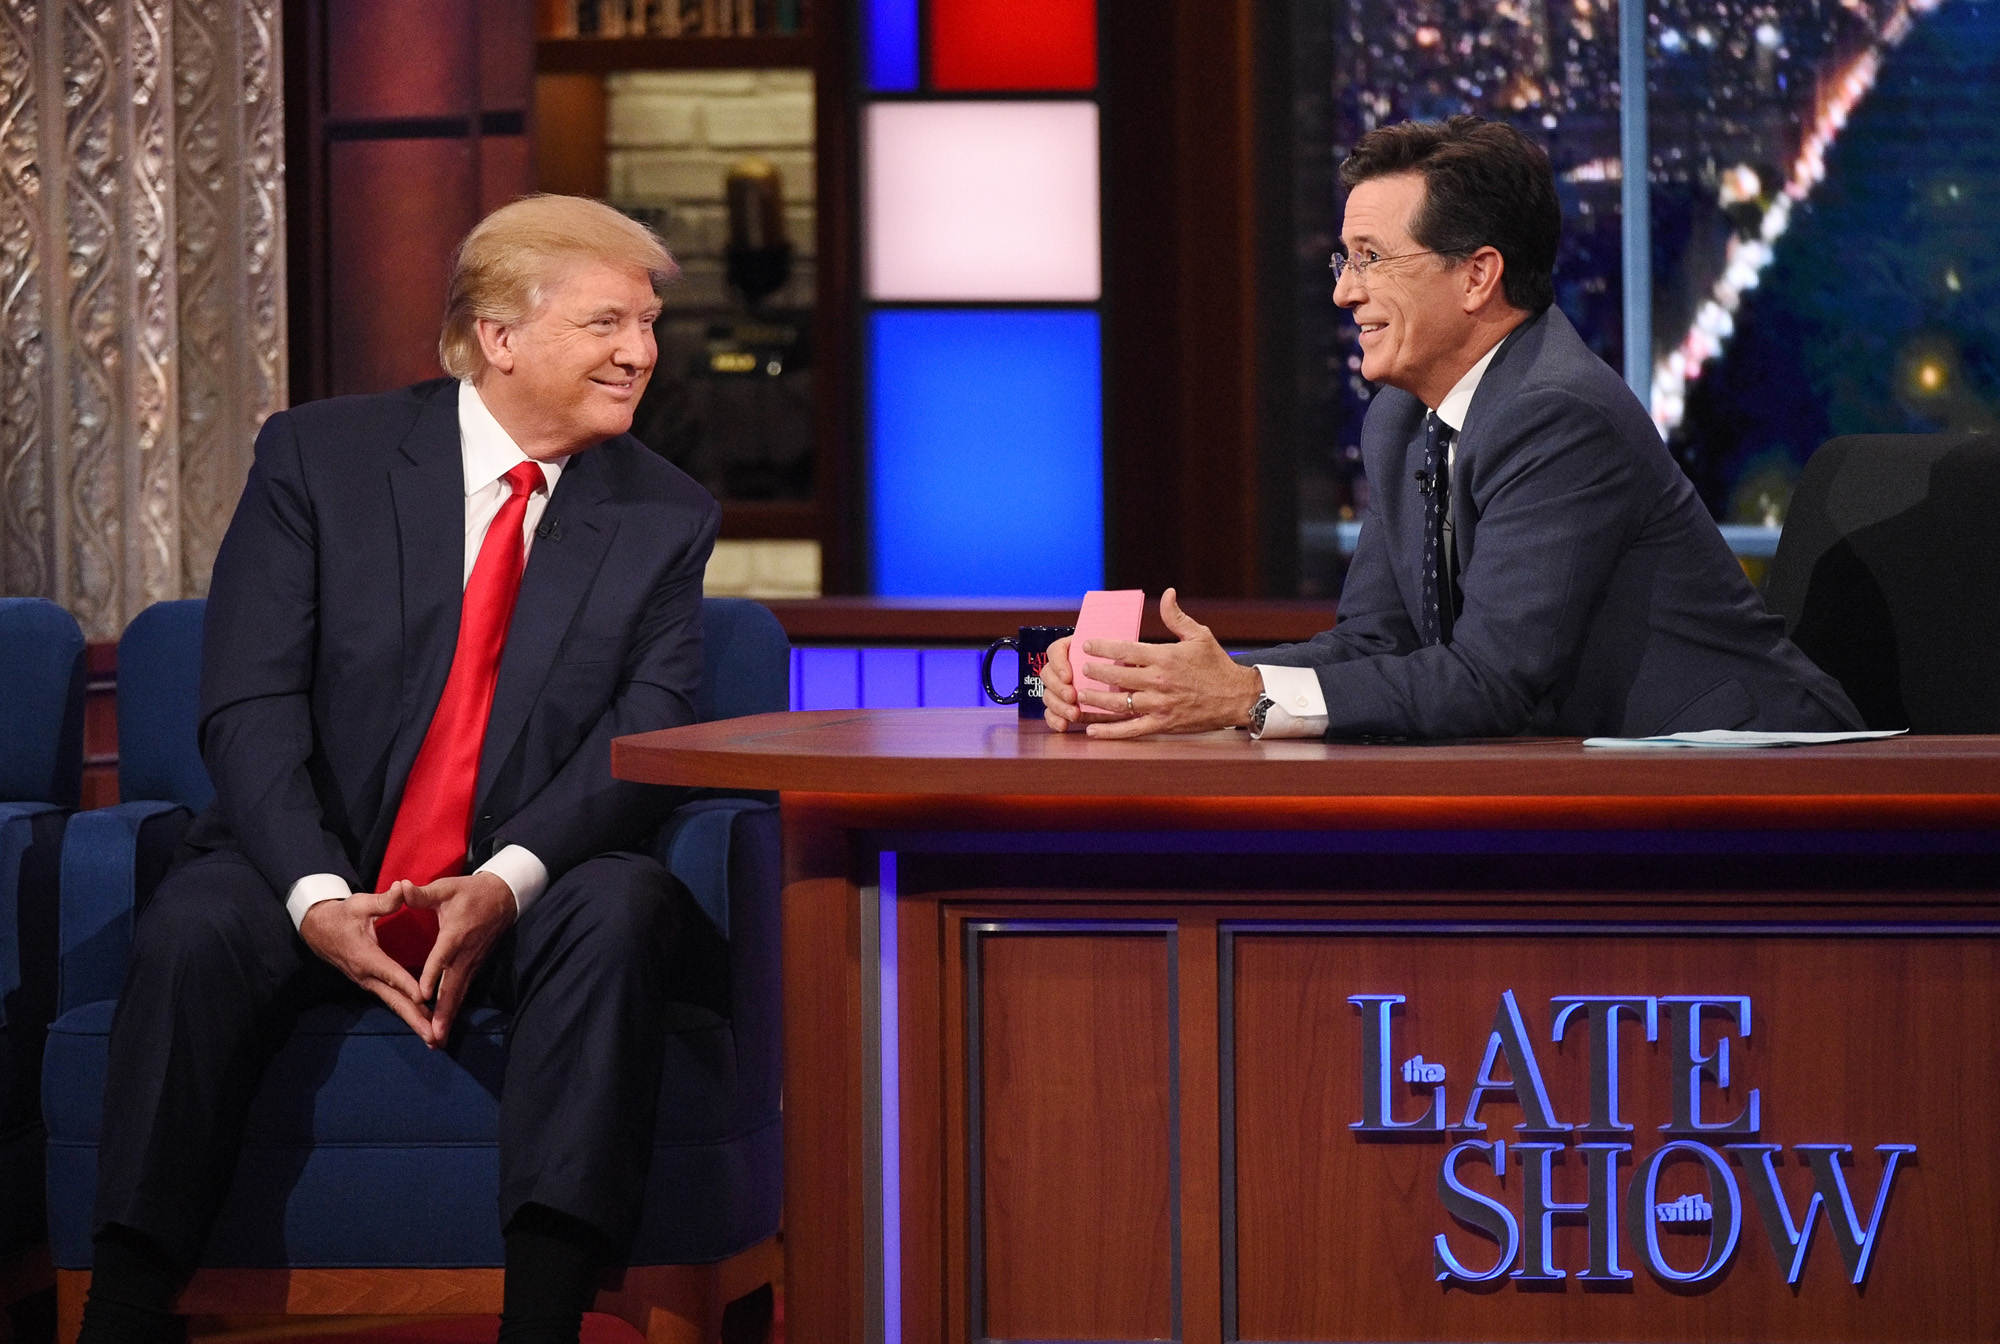 NEW YORK - SEPTEMBER 22: Donald Trump talks about his US Presidential campaign  on The Late Show with Stephen Colbert, Tuesday Sept. 22, 2015 on the CBS Television Network.